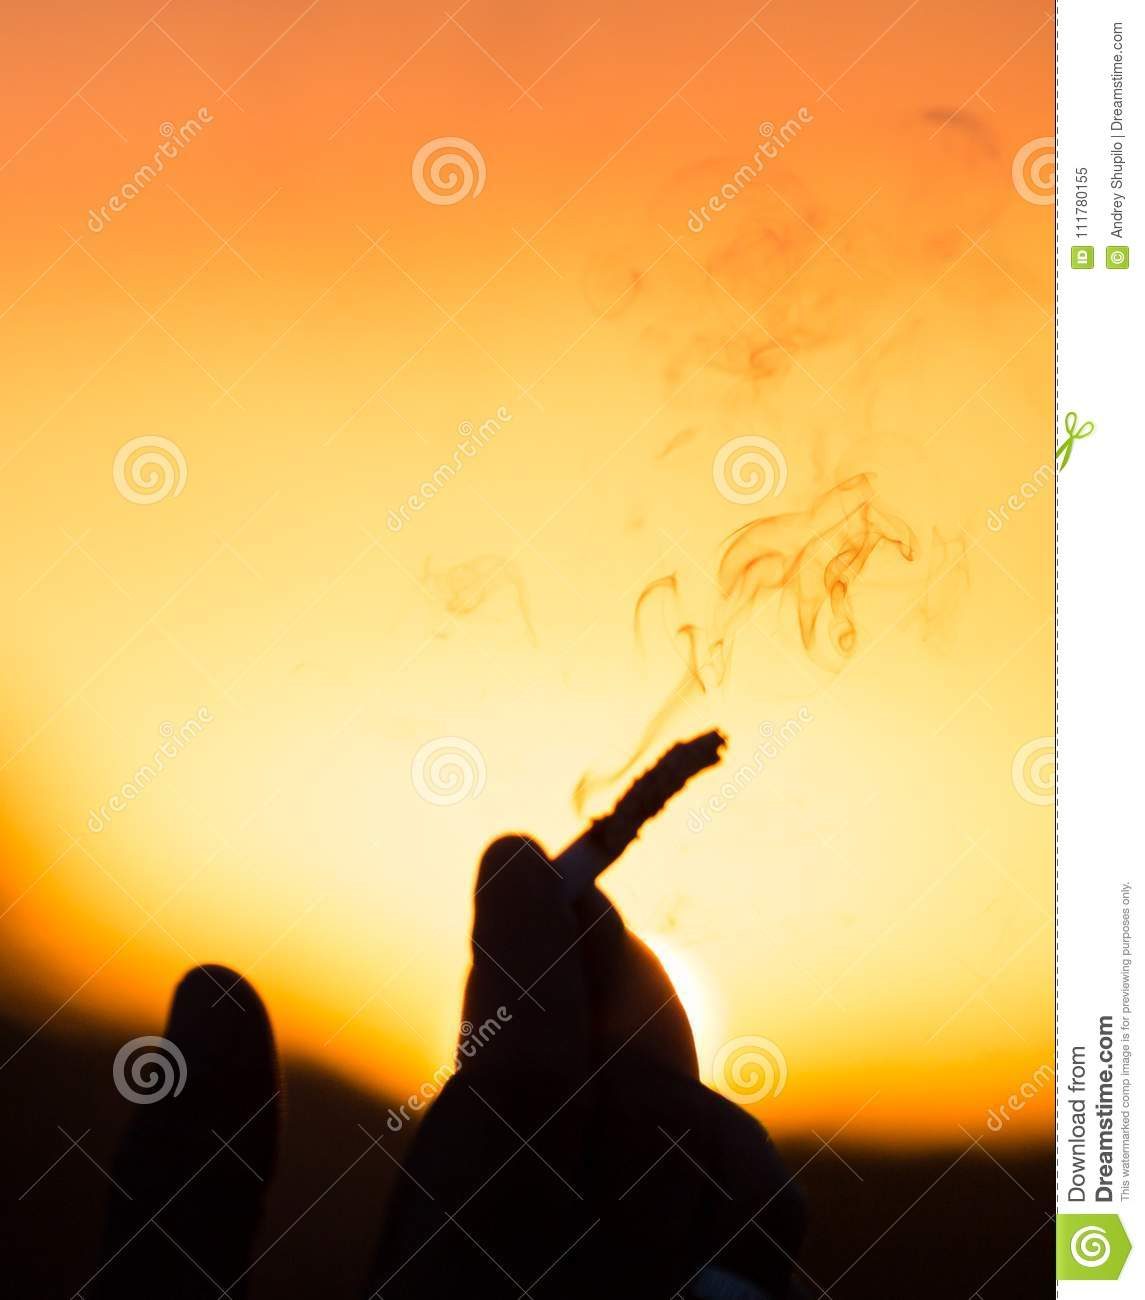 Hand with a cigarette at sunset